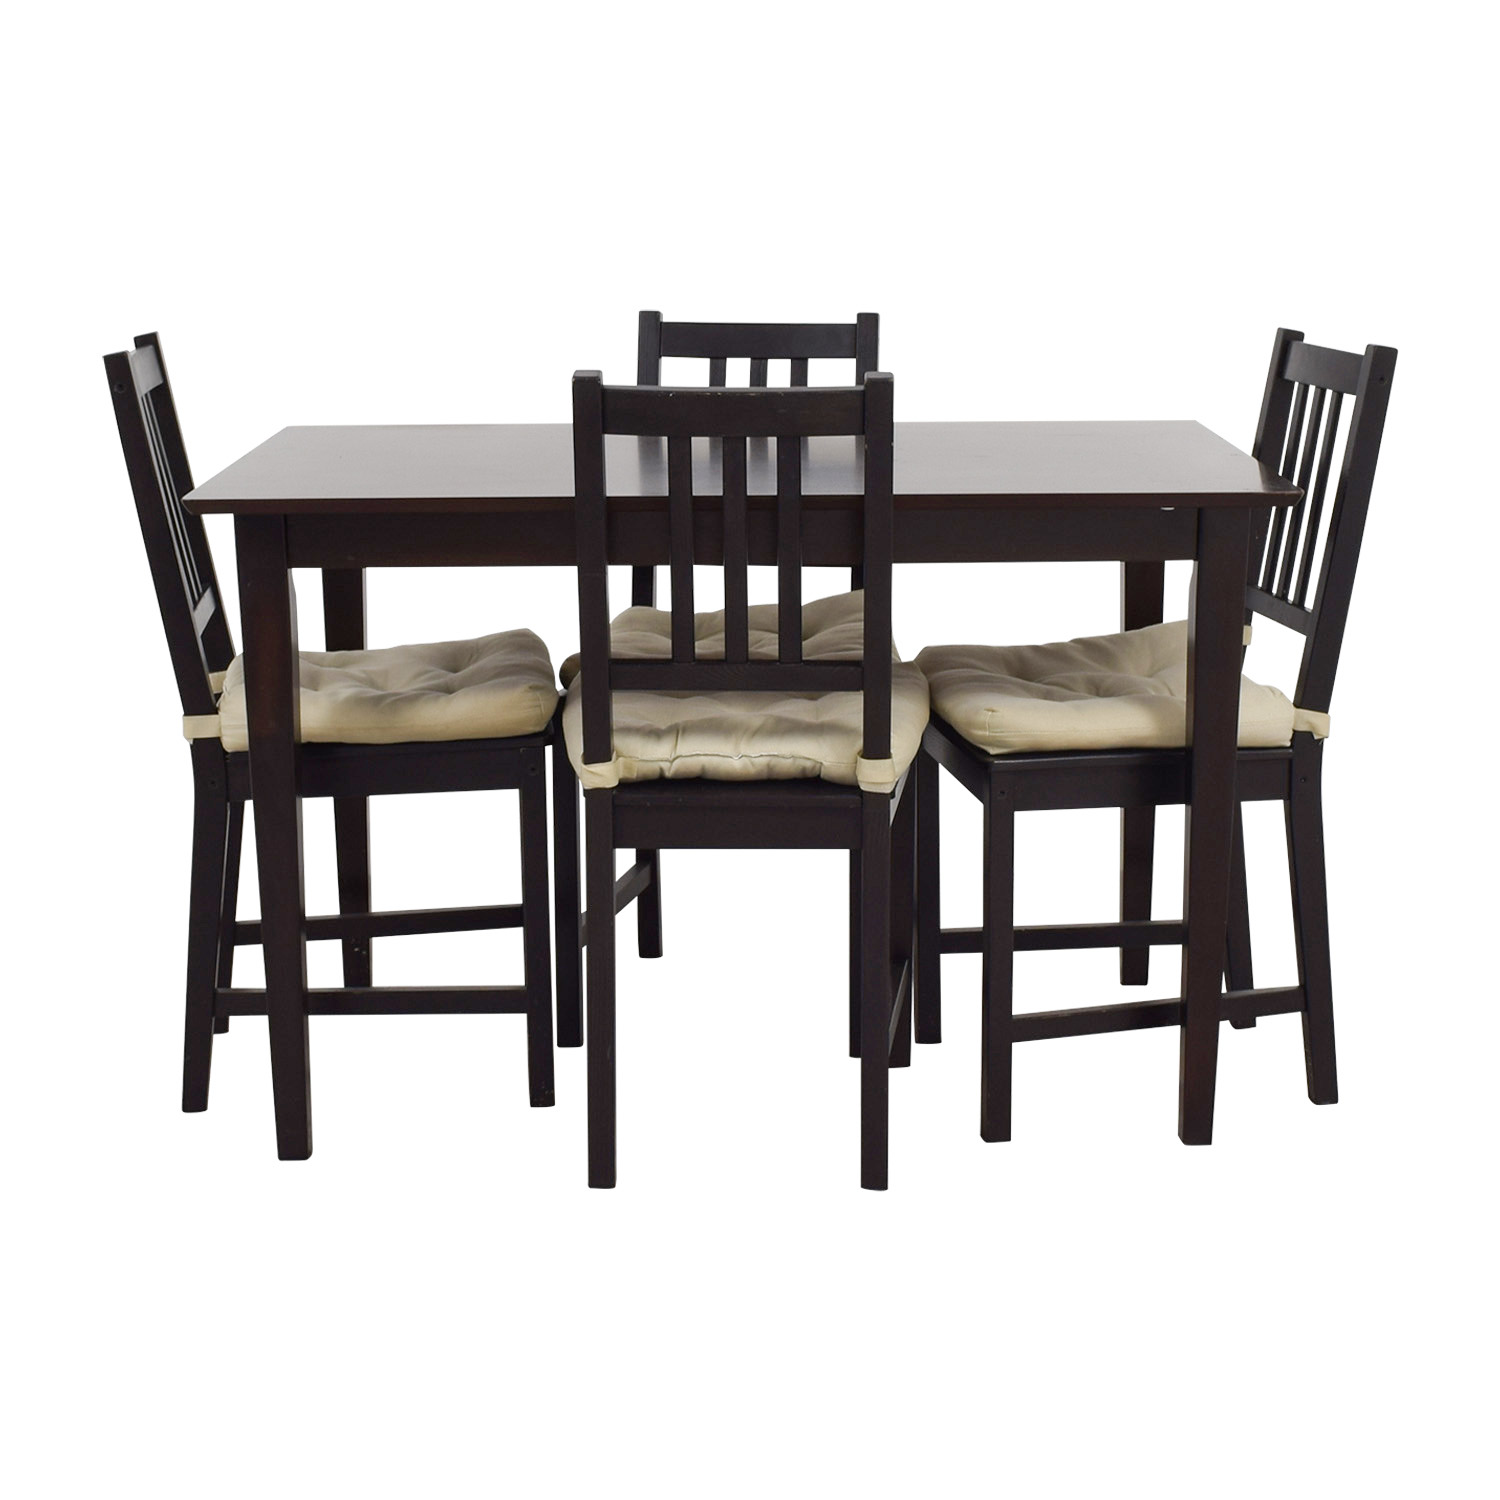 IKEA IKEA Brown Wood Dining Set Tables